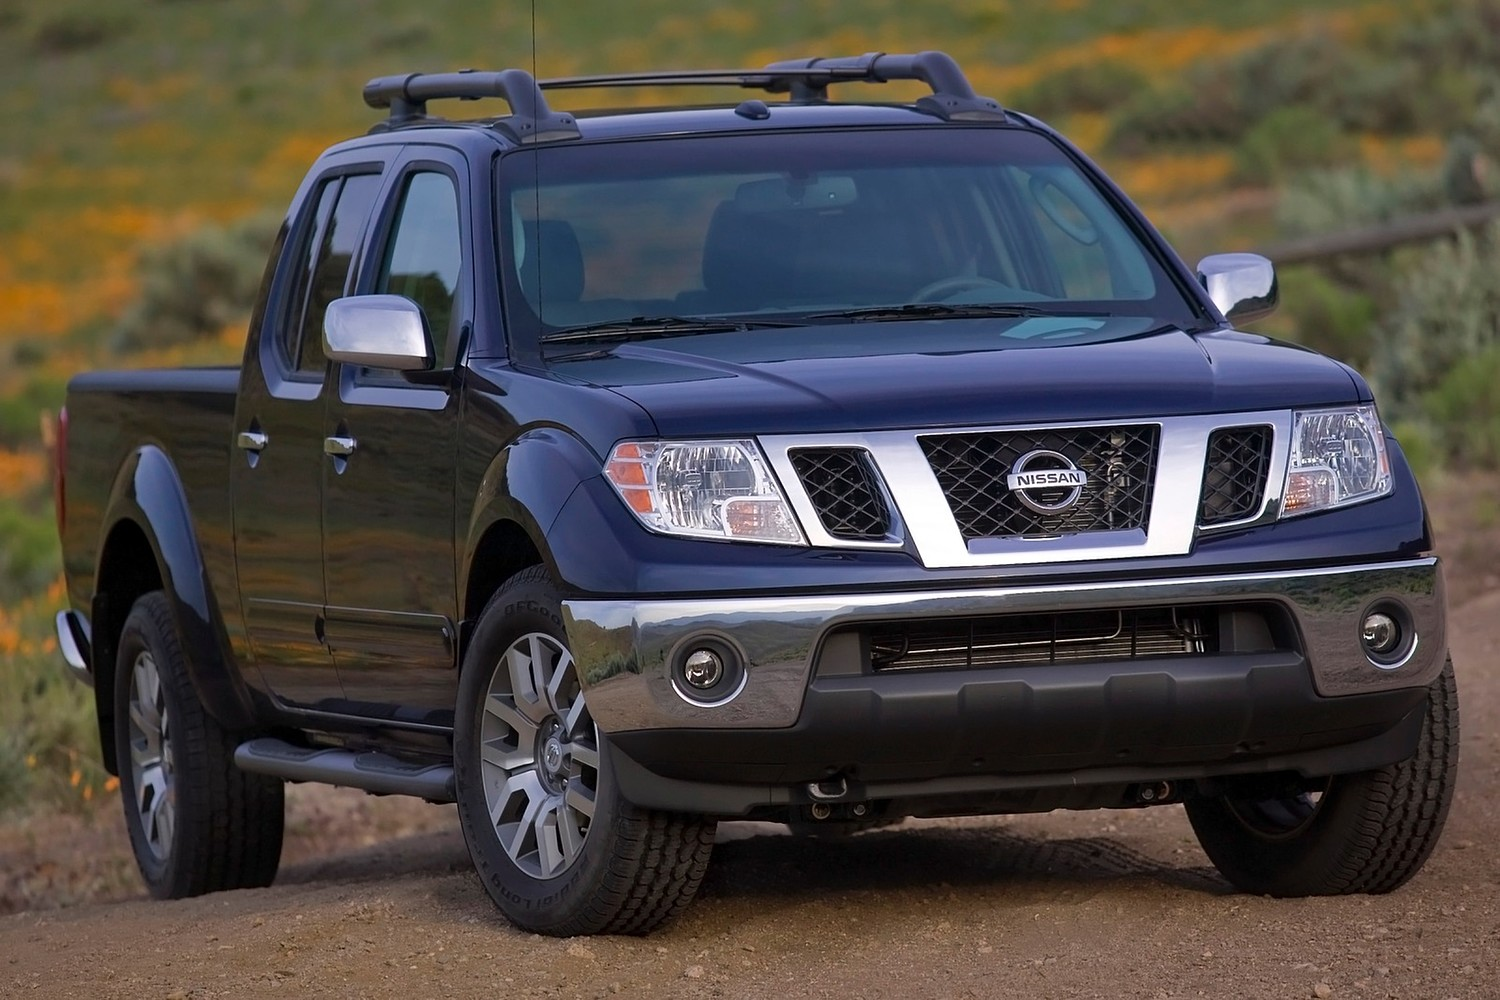 Nissan Frontier SL Crew Cab Pickup Exterior (2013 model year shown)